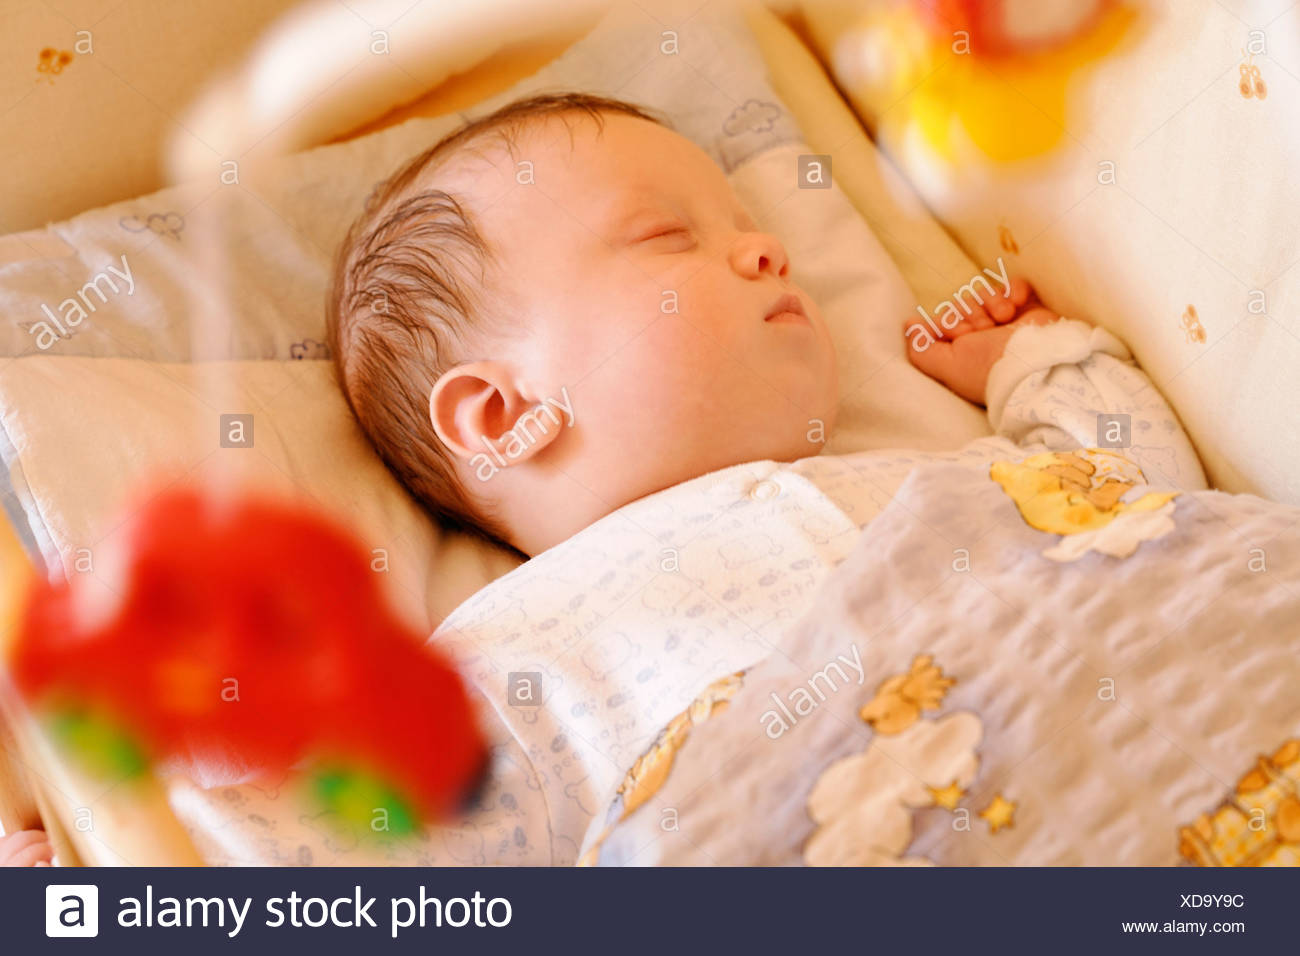 0 To 6 Months 0 6 Months Babies Baby Bed Beds Boy Boys Child Children Close Up Close Up Closed Eyes Close Stock Photo Alamy